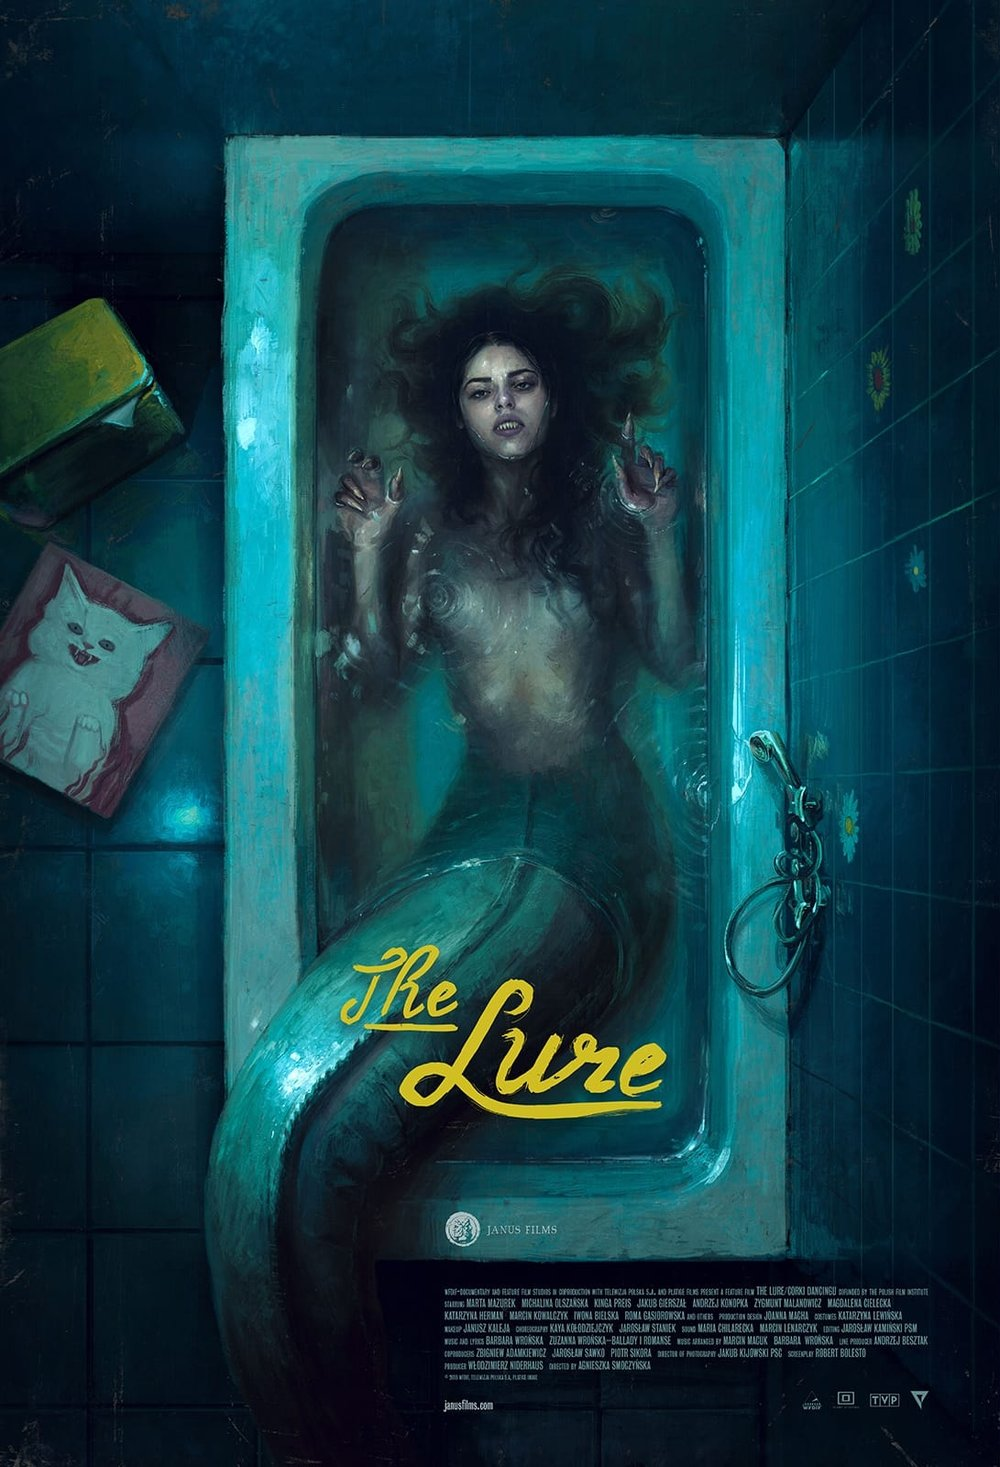 The Lure (2015) - Directed by: Agnieszka SmoczynskaStarring: Marta Mazurek, Michalina Olszanska, Jakub GierszalRated: NR (Suggested R for Sexual Content Including Nudity and Dialogue, and Some Violence)Running Time: 1 h 32 mTMM Score: 4 stars out of 5STRENGTHS: Originality, Music, Production Design, DirectingWEAKNESSES: Some Acting, Some Objectionable Material